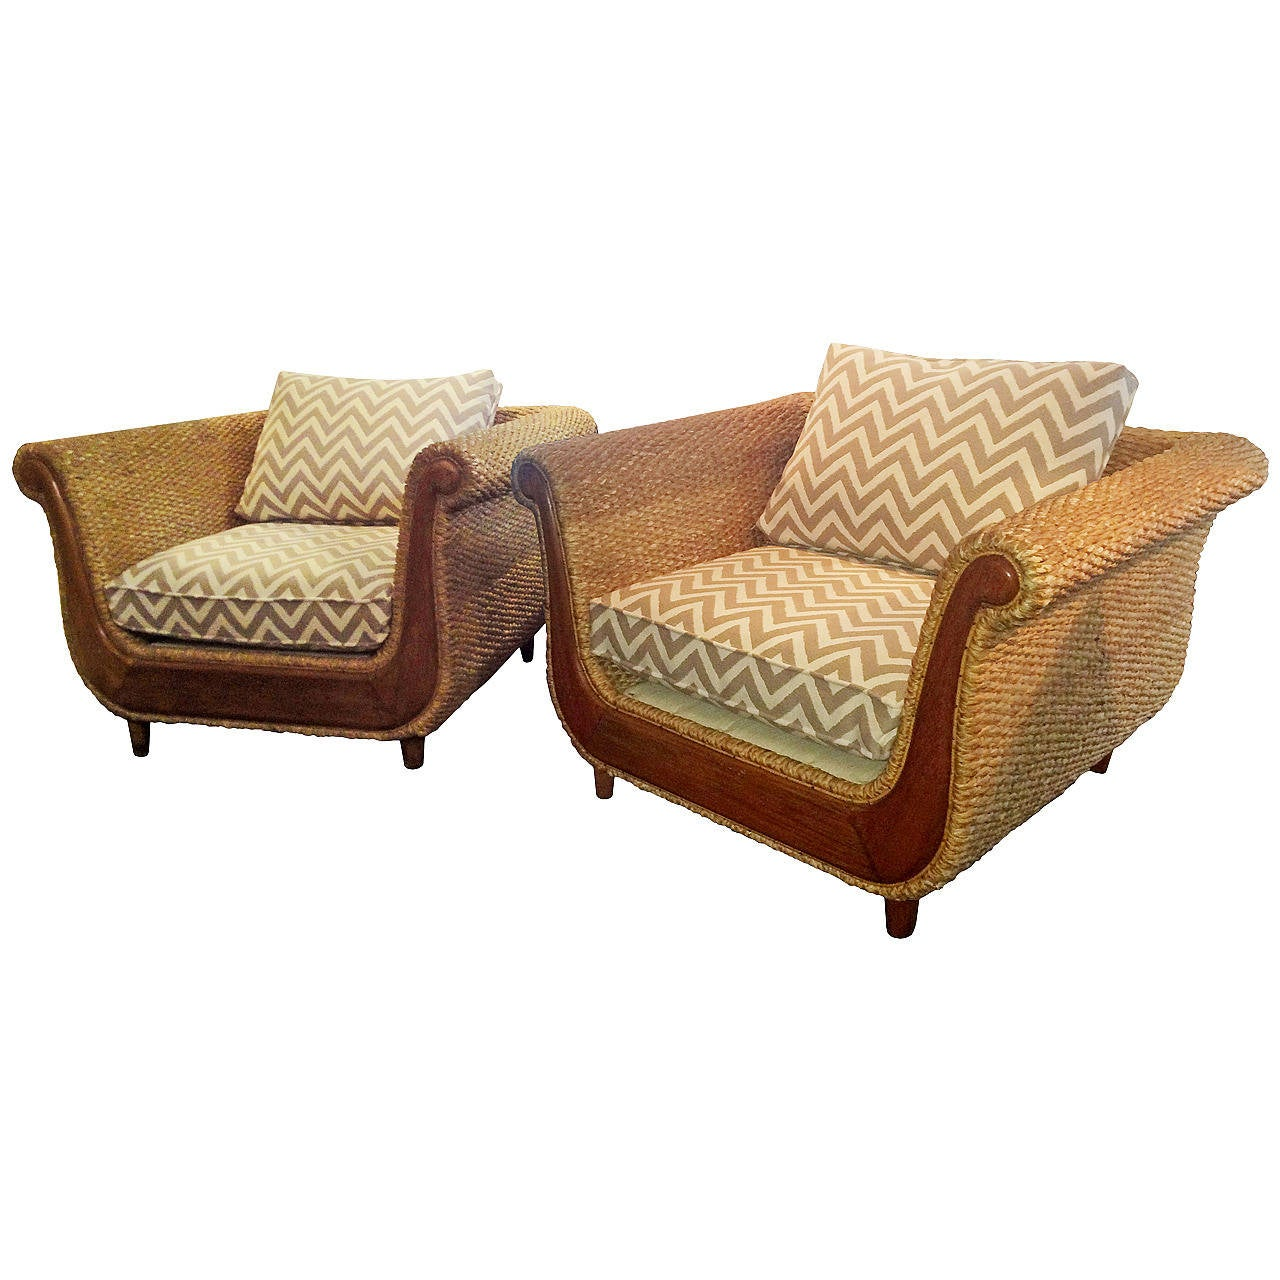 bates manor furniture case Star furniture is one of the largest furniture retailers in america specializing in high style furniture at an affordable price showrooms in houston, austin, san.